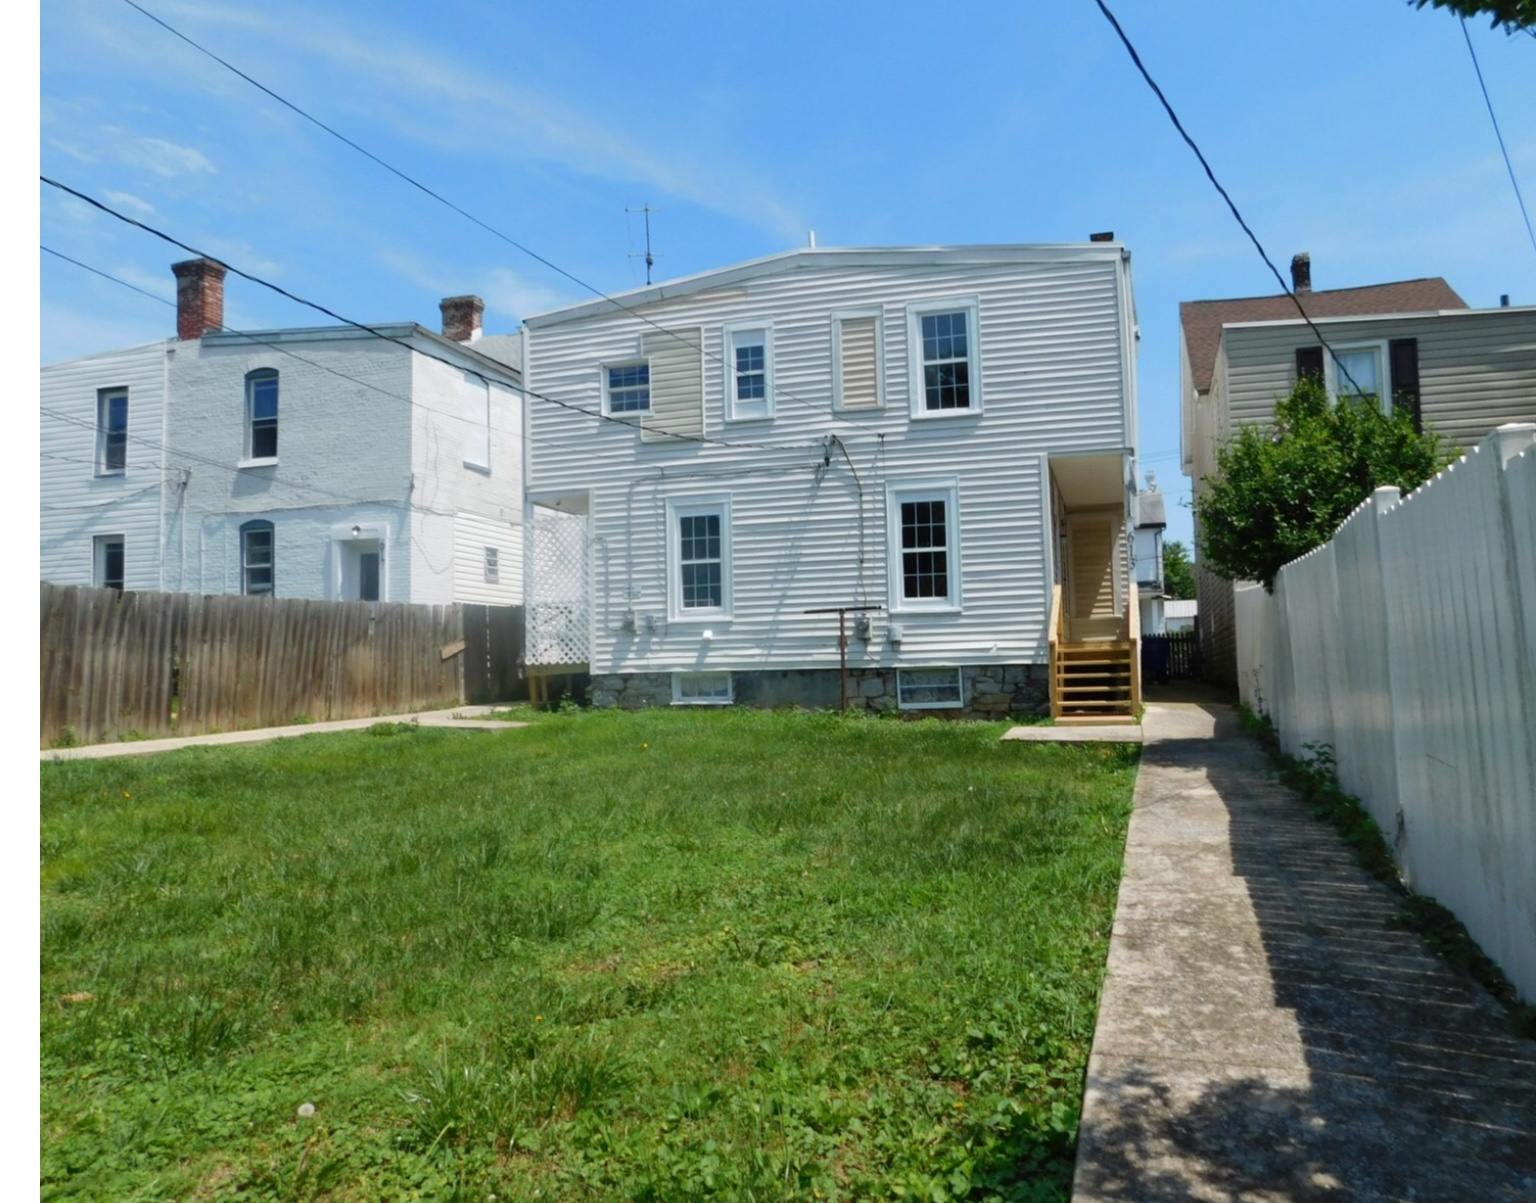 613 N Mulberry St, Hagerstown, MD